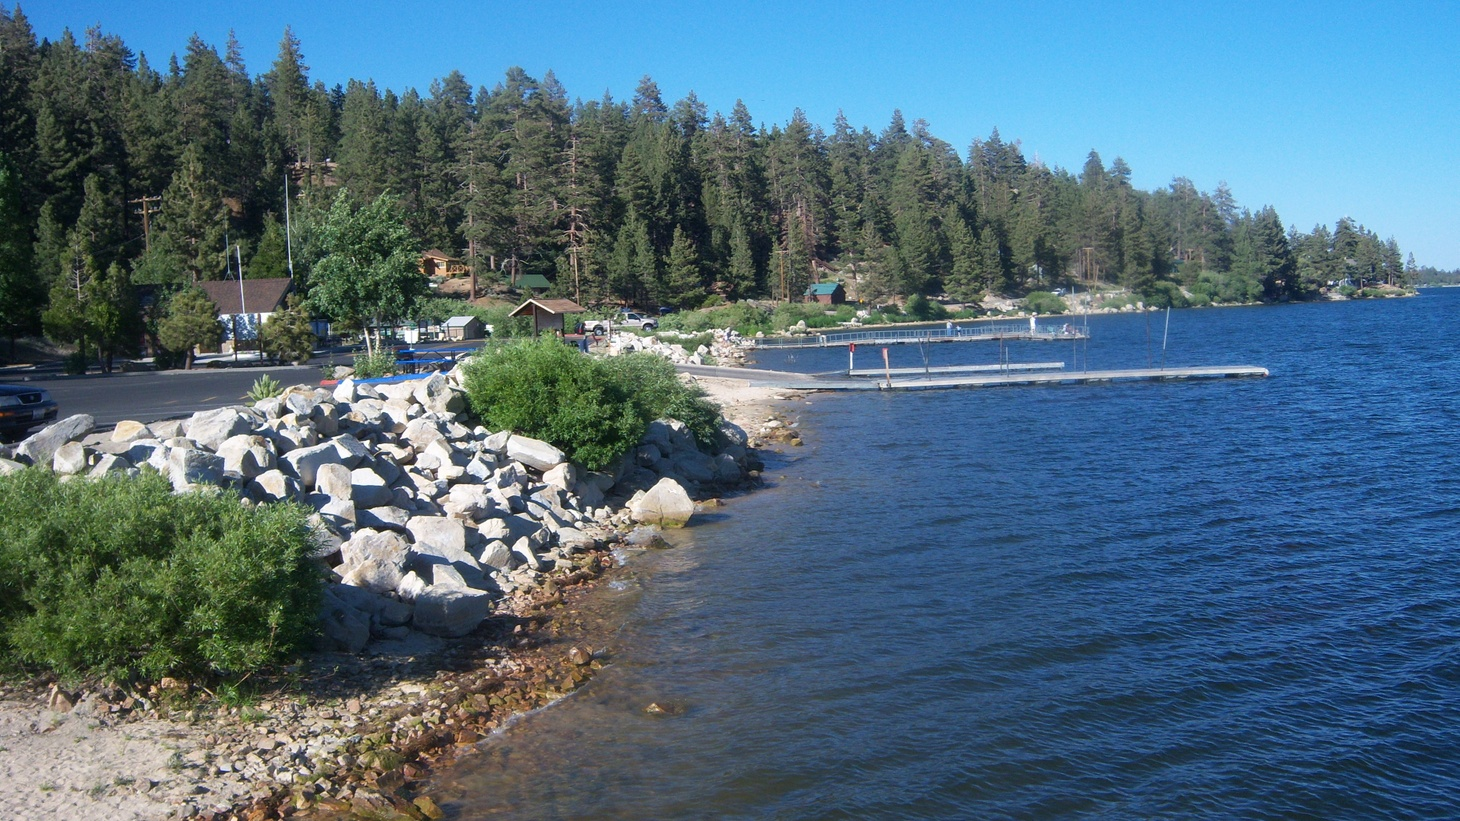 After 10 weeks of closures, Big Bear Lake's economy is hanging by a thread, according to City Manager Frank Rush.